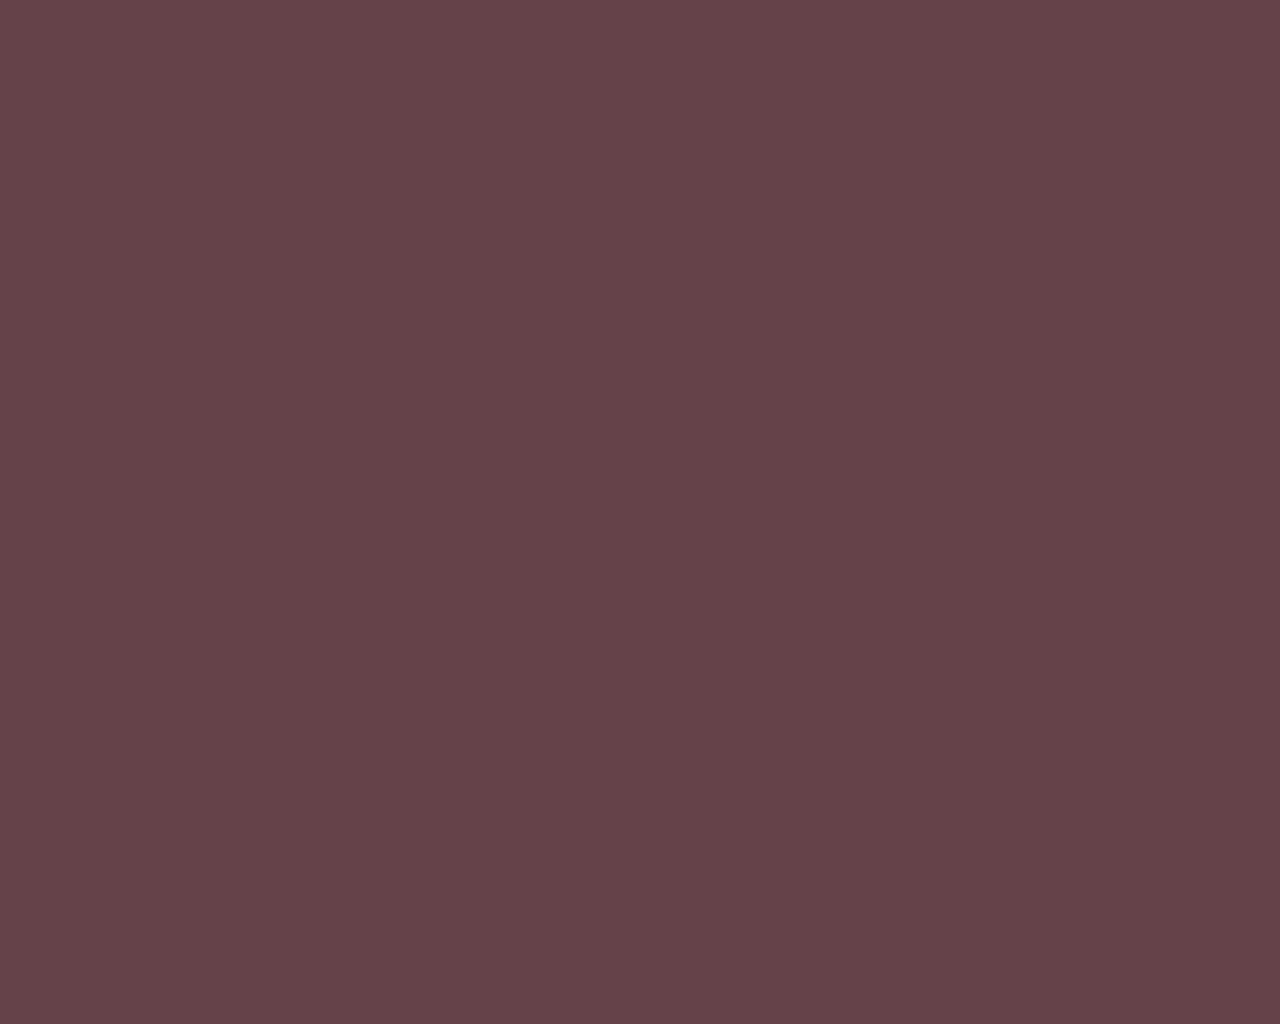 1280x1024 Deep Tuscan Red Solid Color Background